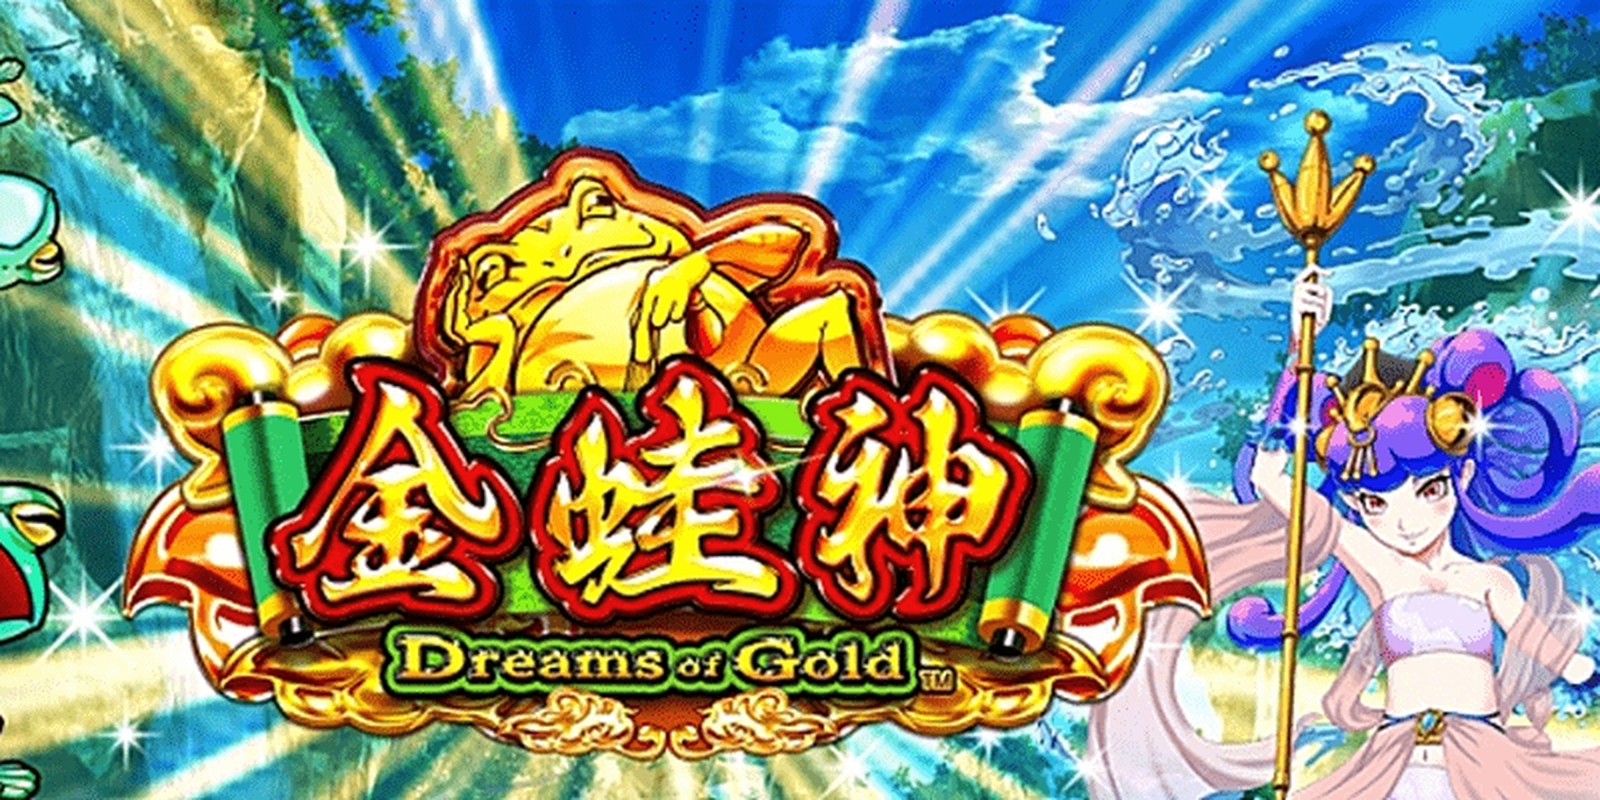 The Dreams of Gold Online Slot Demo Game by JTG